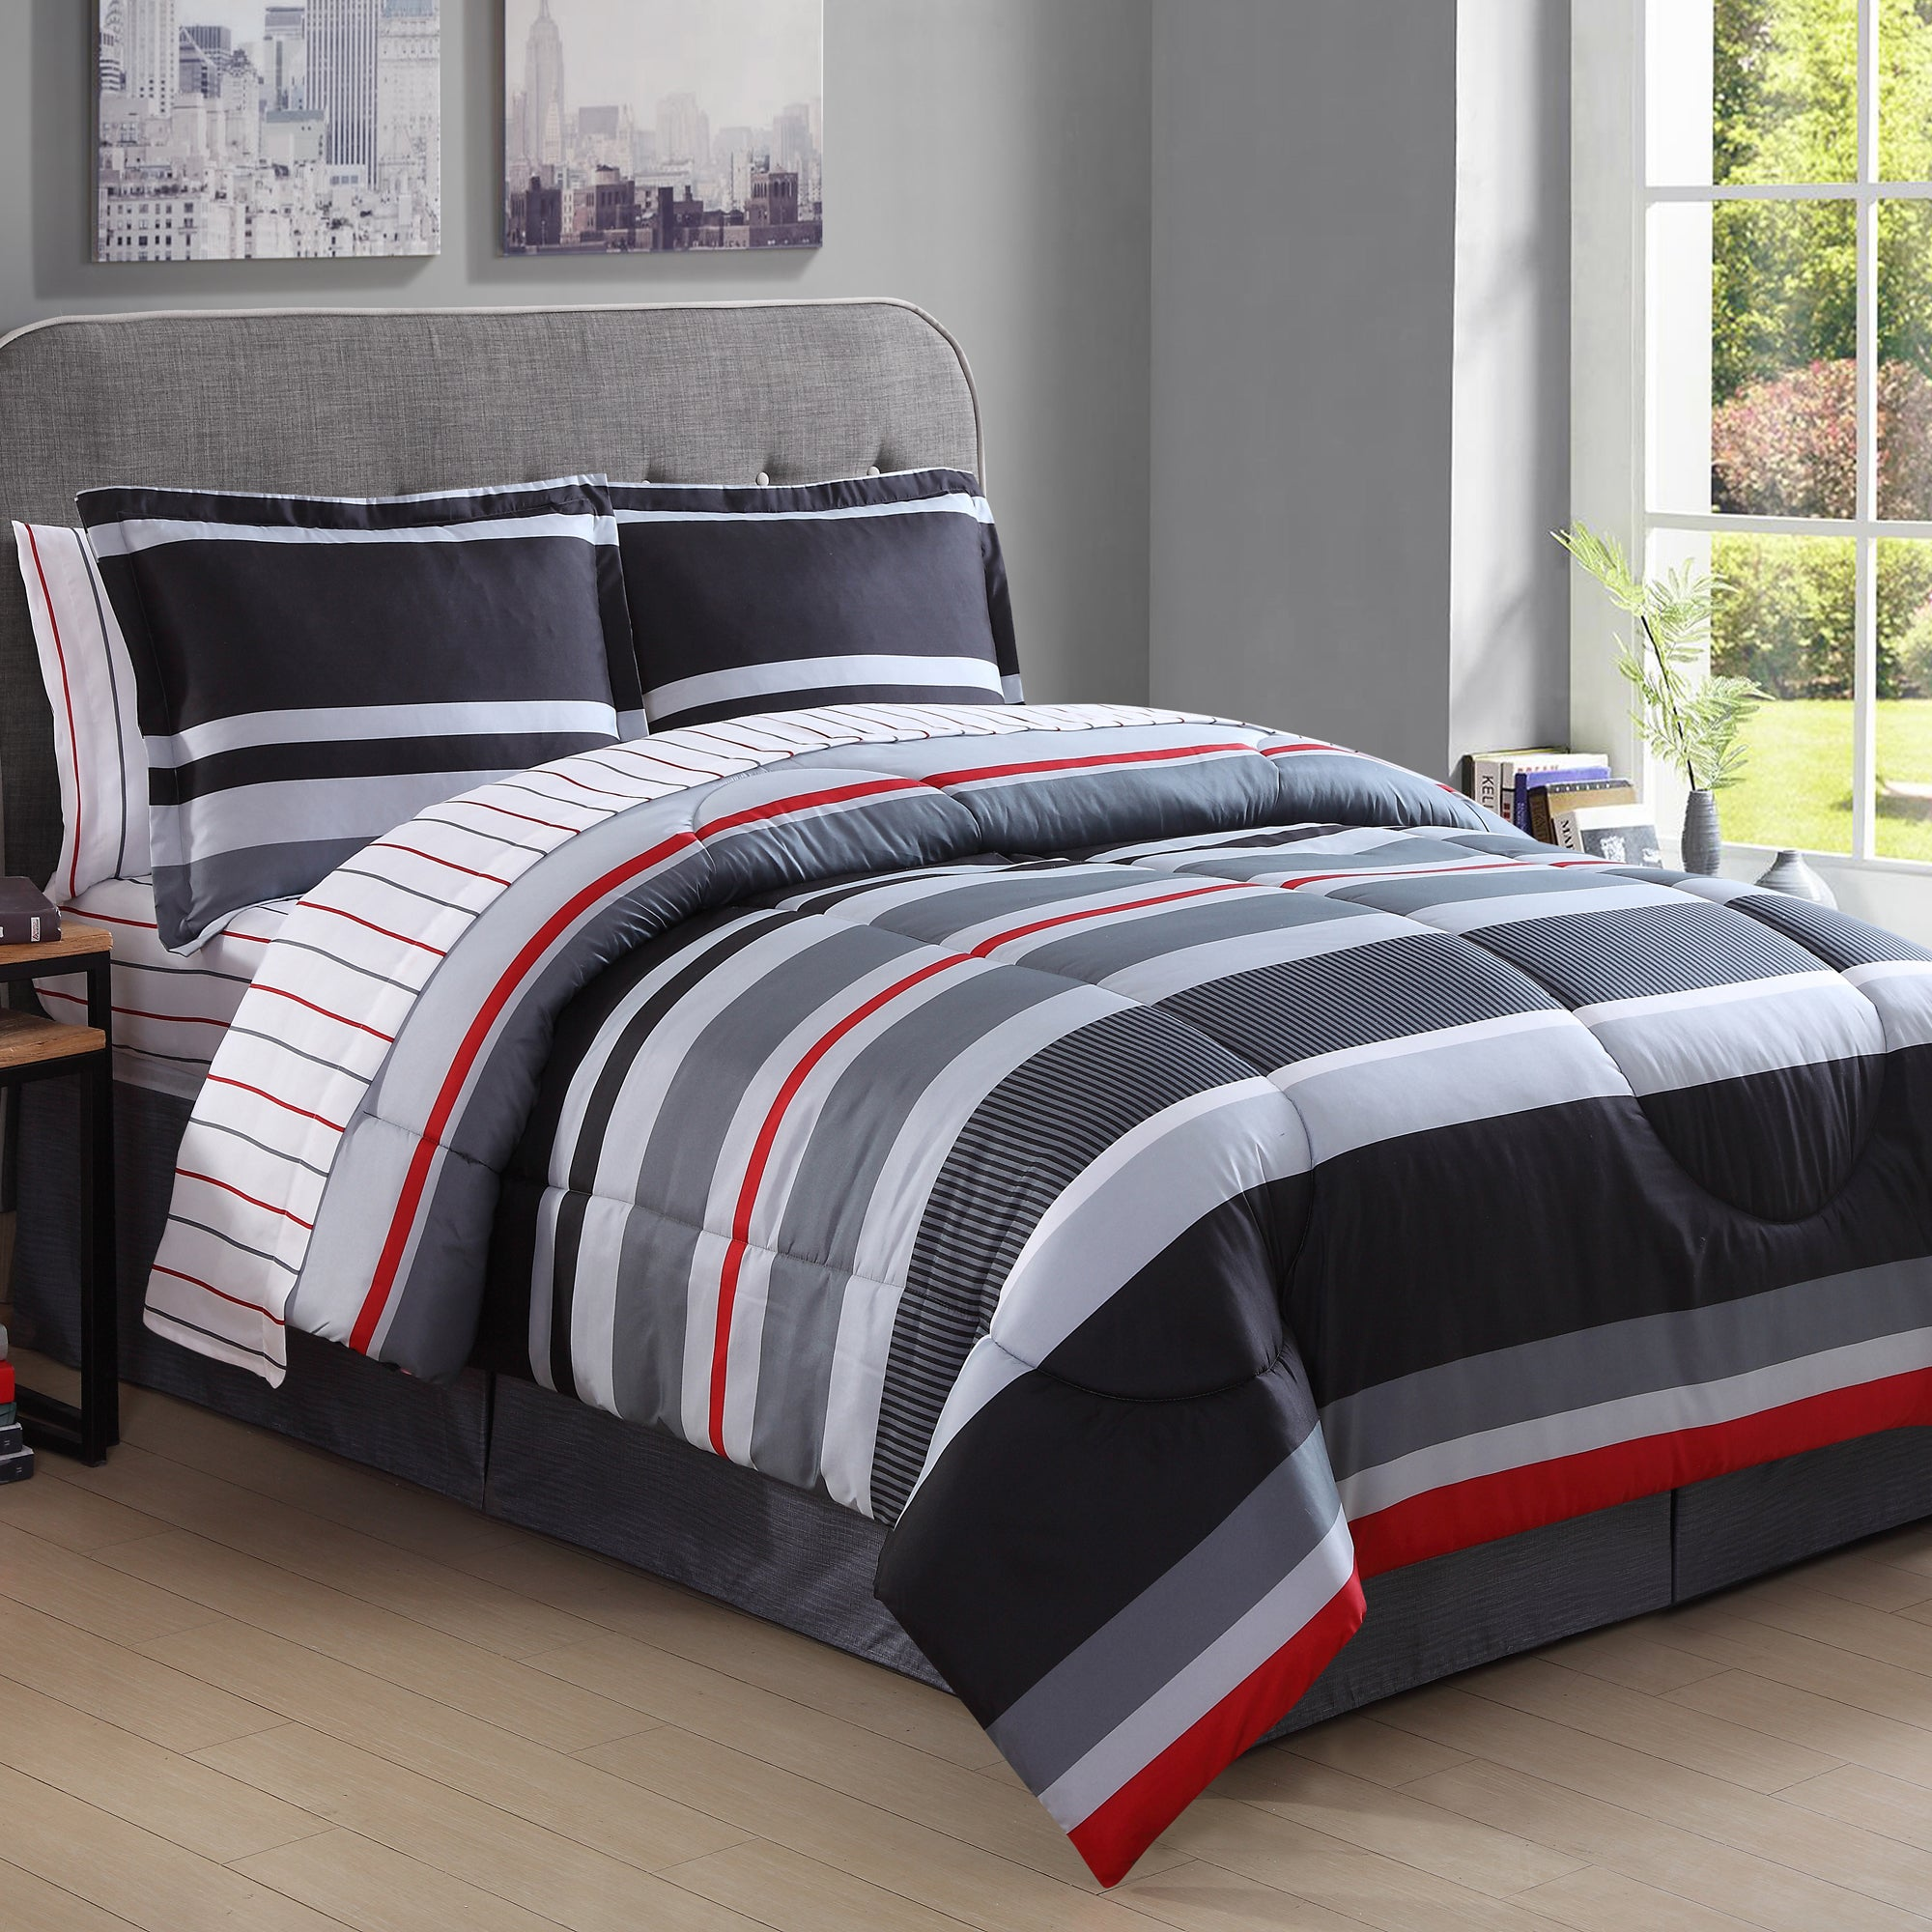 Porch & Den Wallingford Meridian Striped 8-piece Bed in a Bag